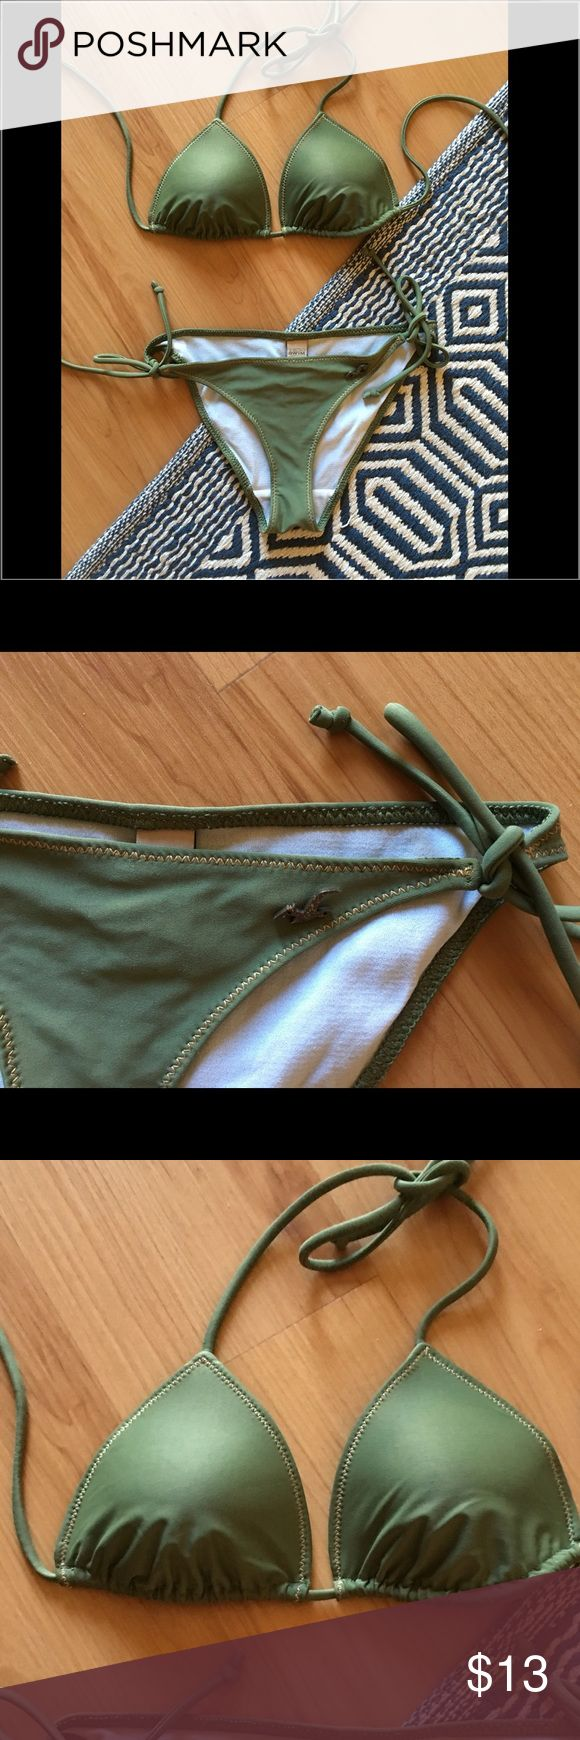 Olive green triangle bikini Like new condition. Barely worn. True to size. Not thick padding but the bikini top has form and is not cloth thin. Hollister Swim Bikinis